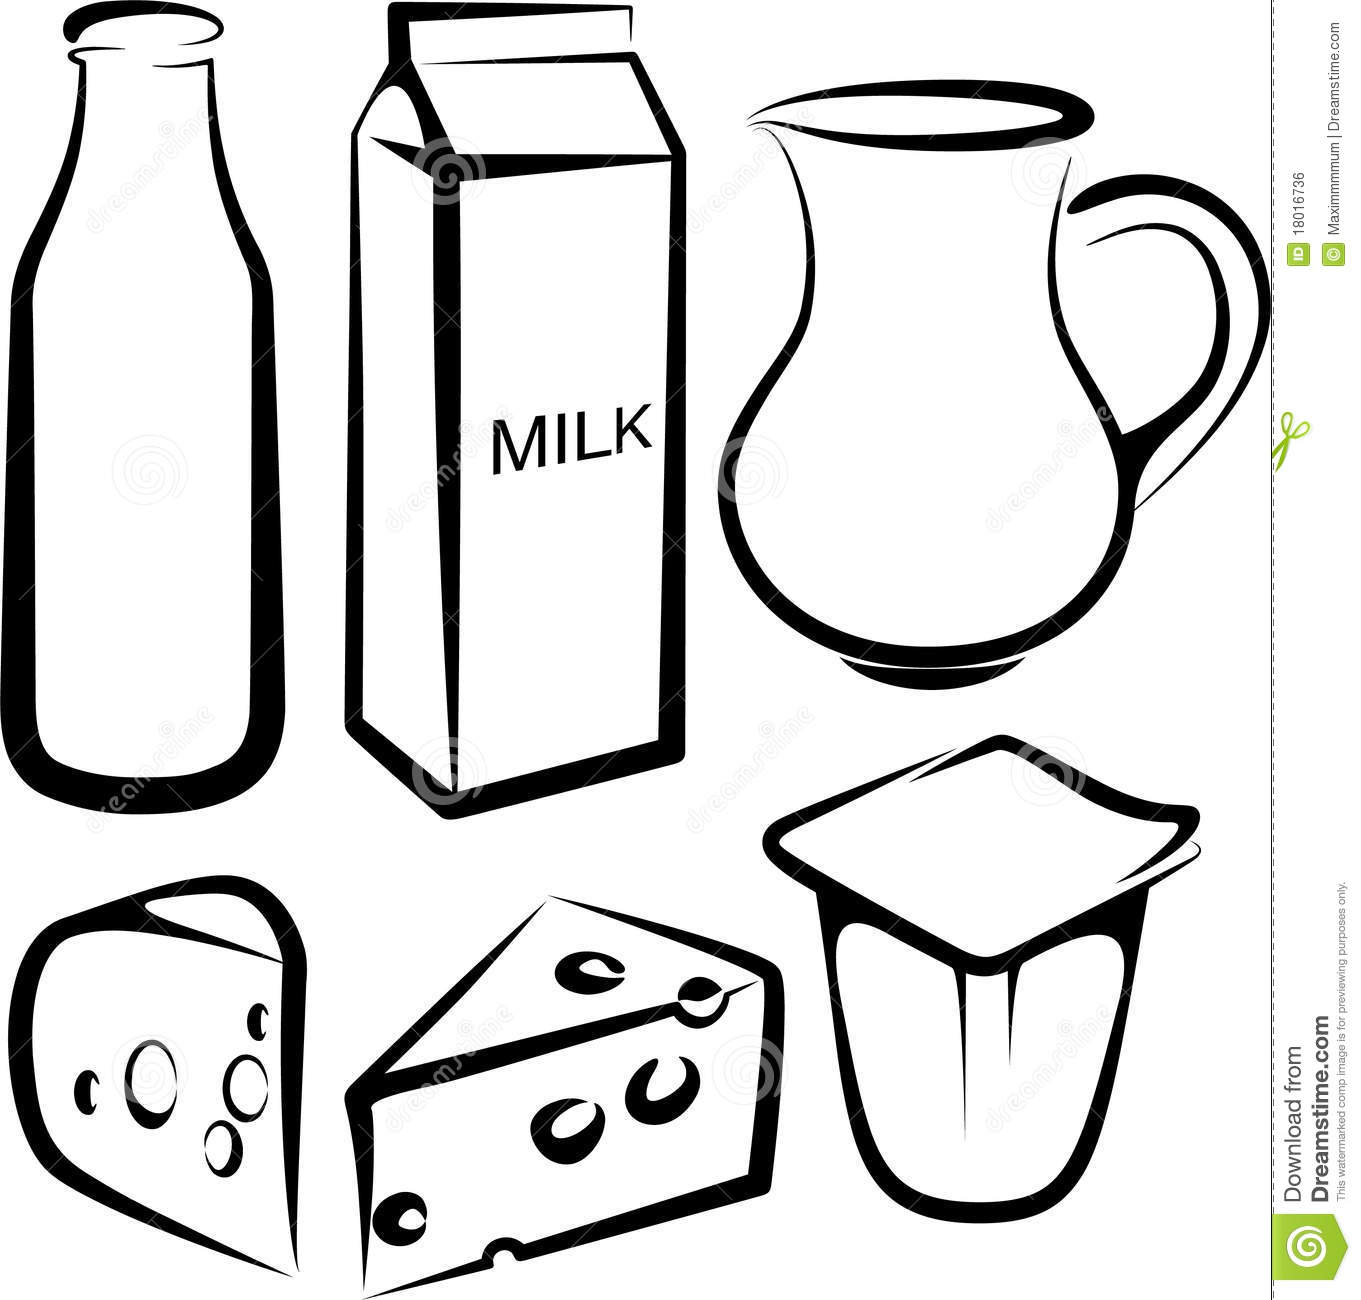 Yogurt Line Drawing : Set of dairy products stock vector illustration